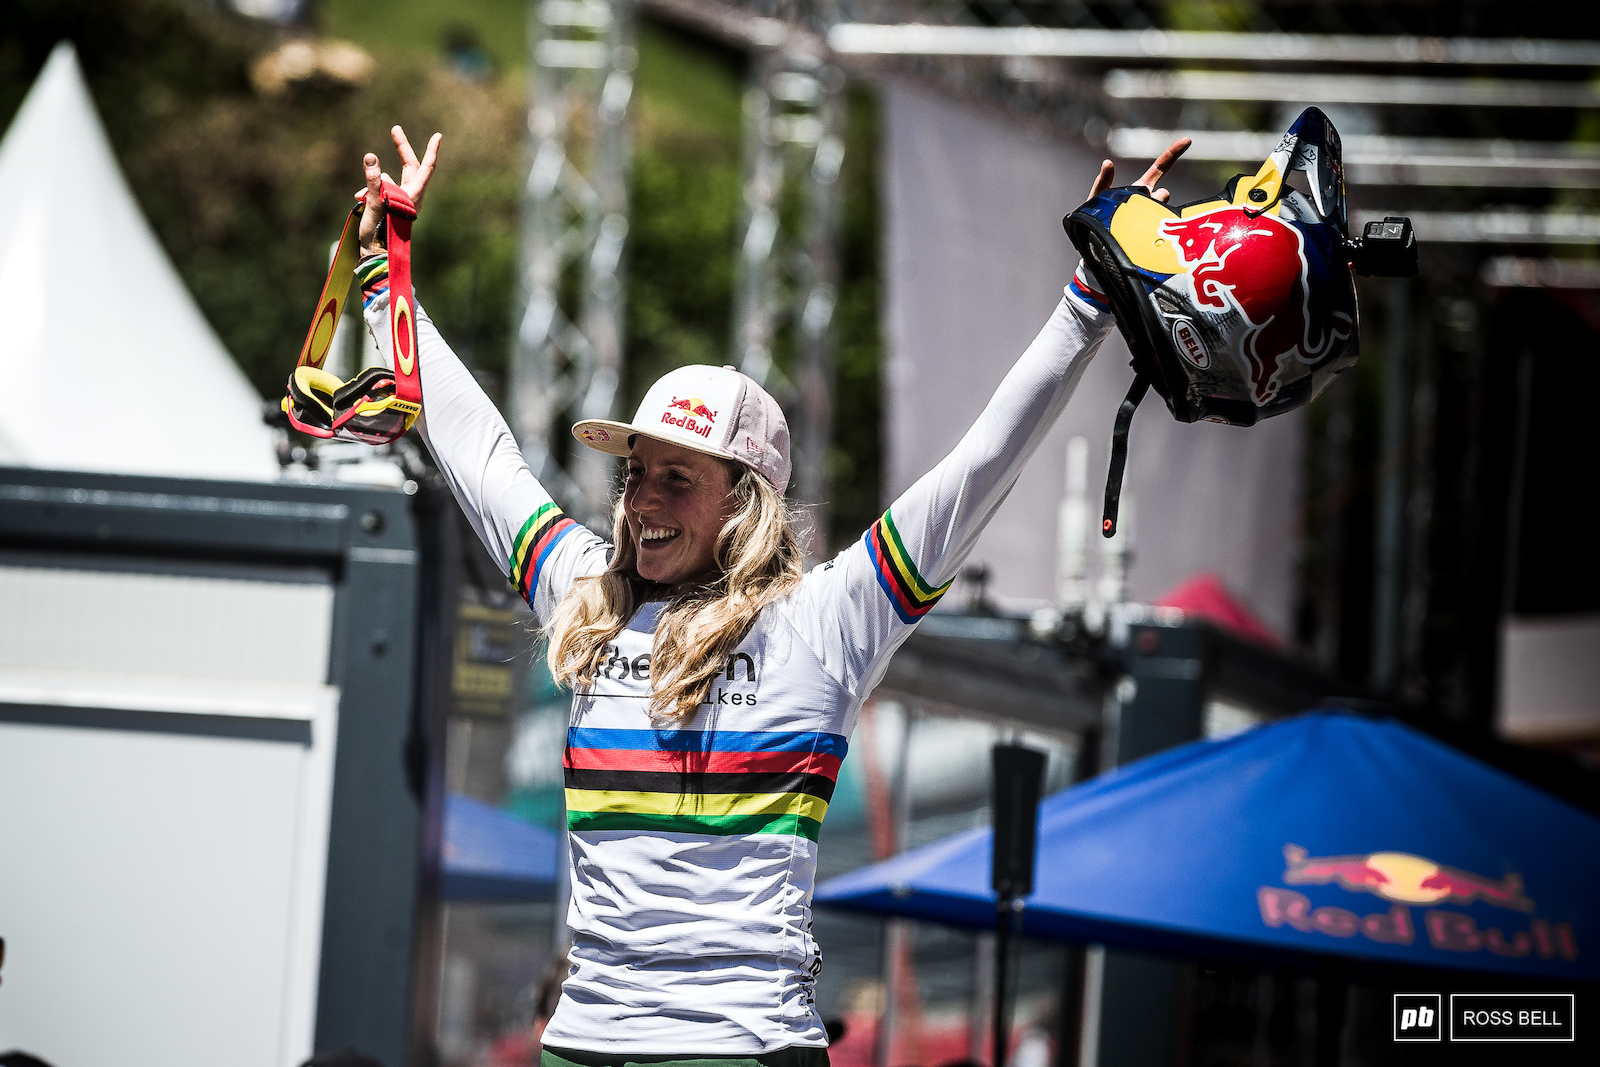 Win number 2 of the season for Rachel Atherton as she claws back towards Tracey Hannah in the overall.